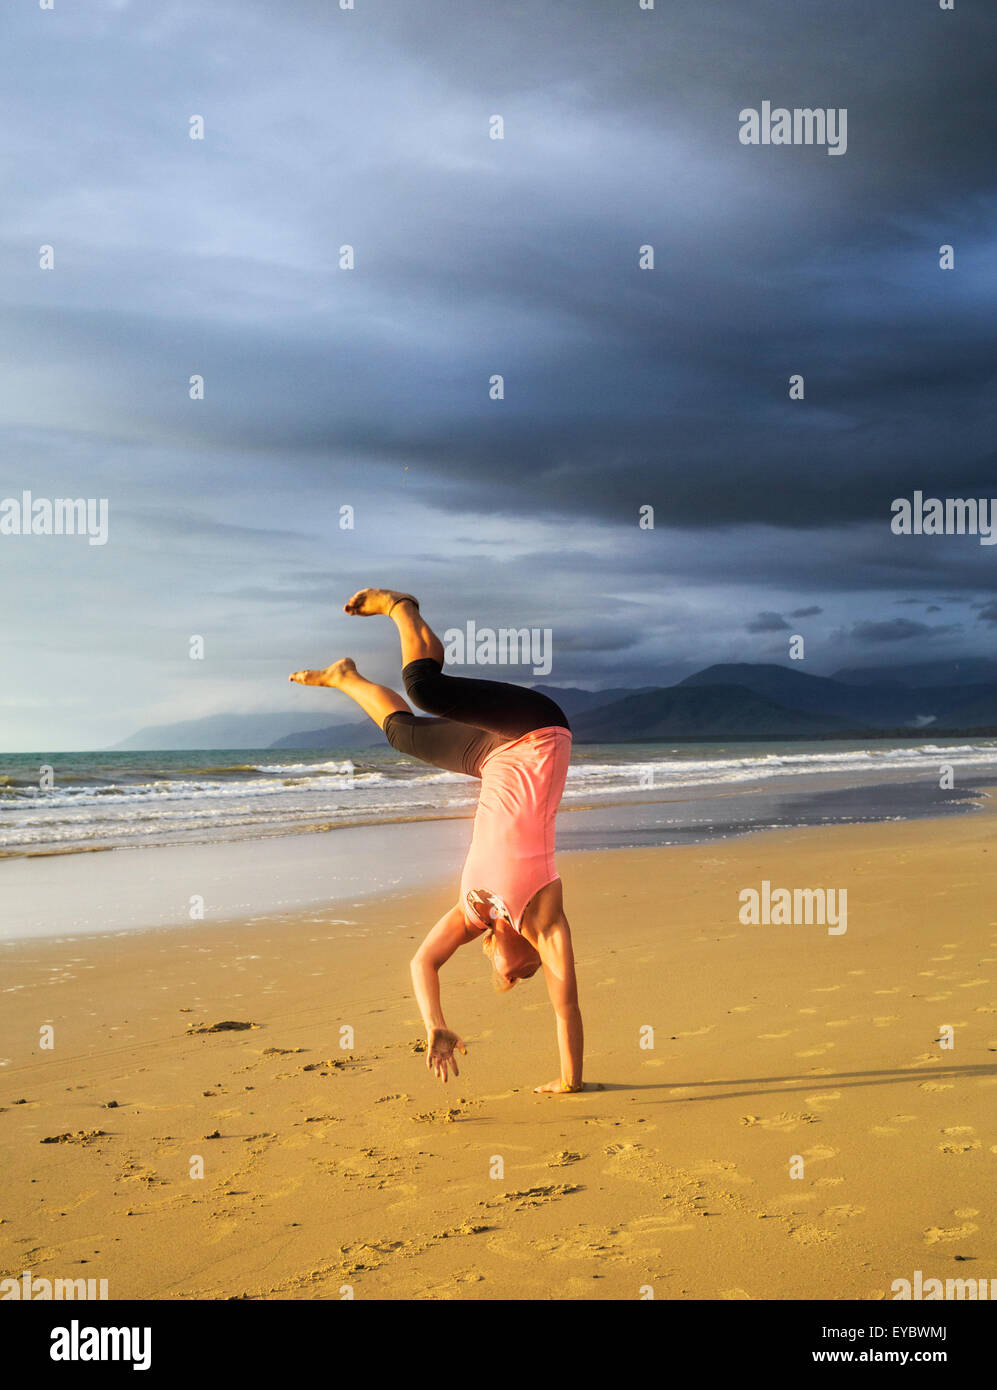 A young woman doing a cartwheel on the beach. - Stock Image